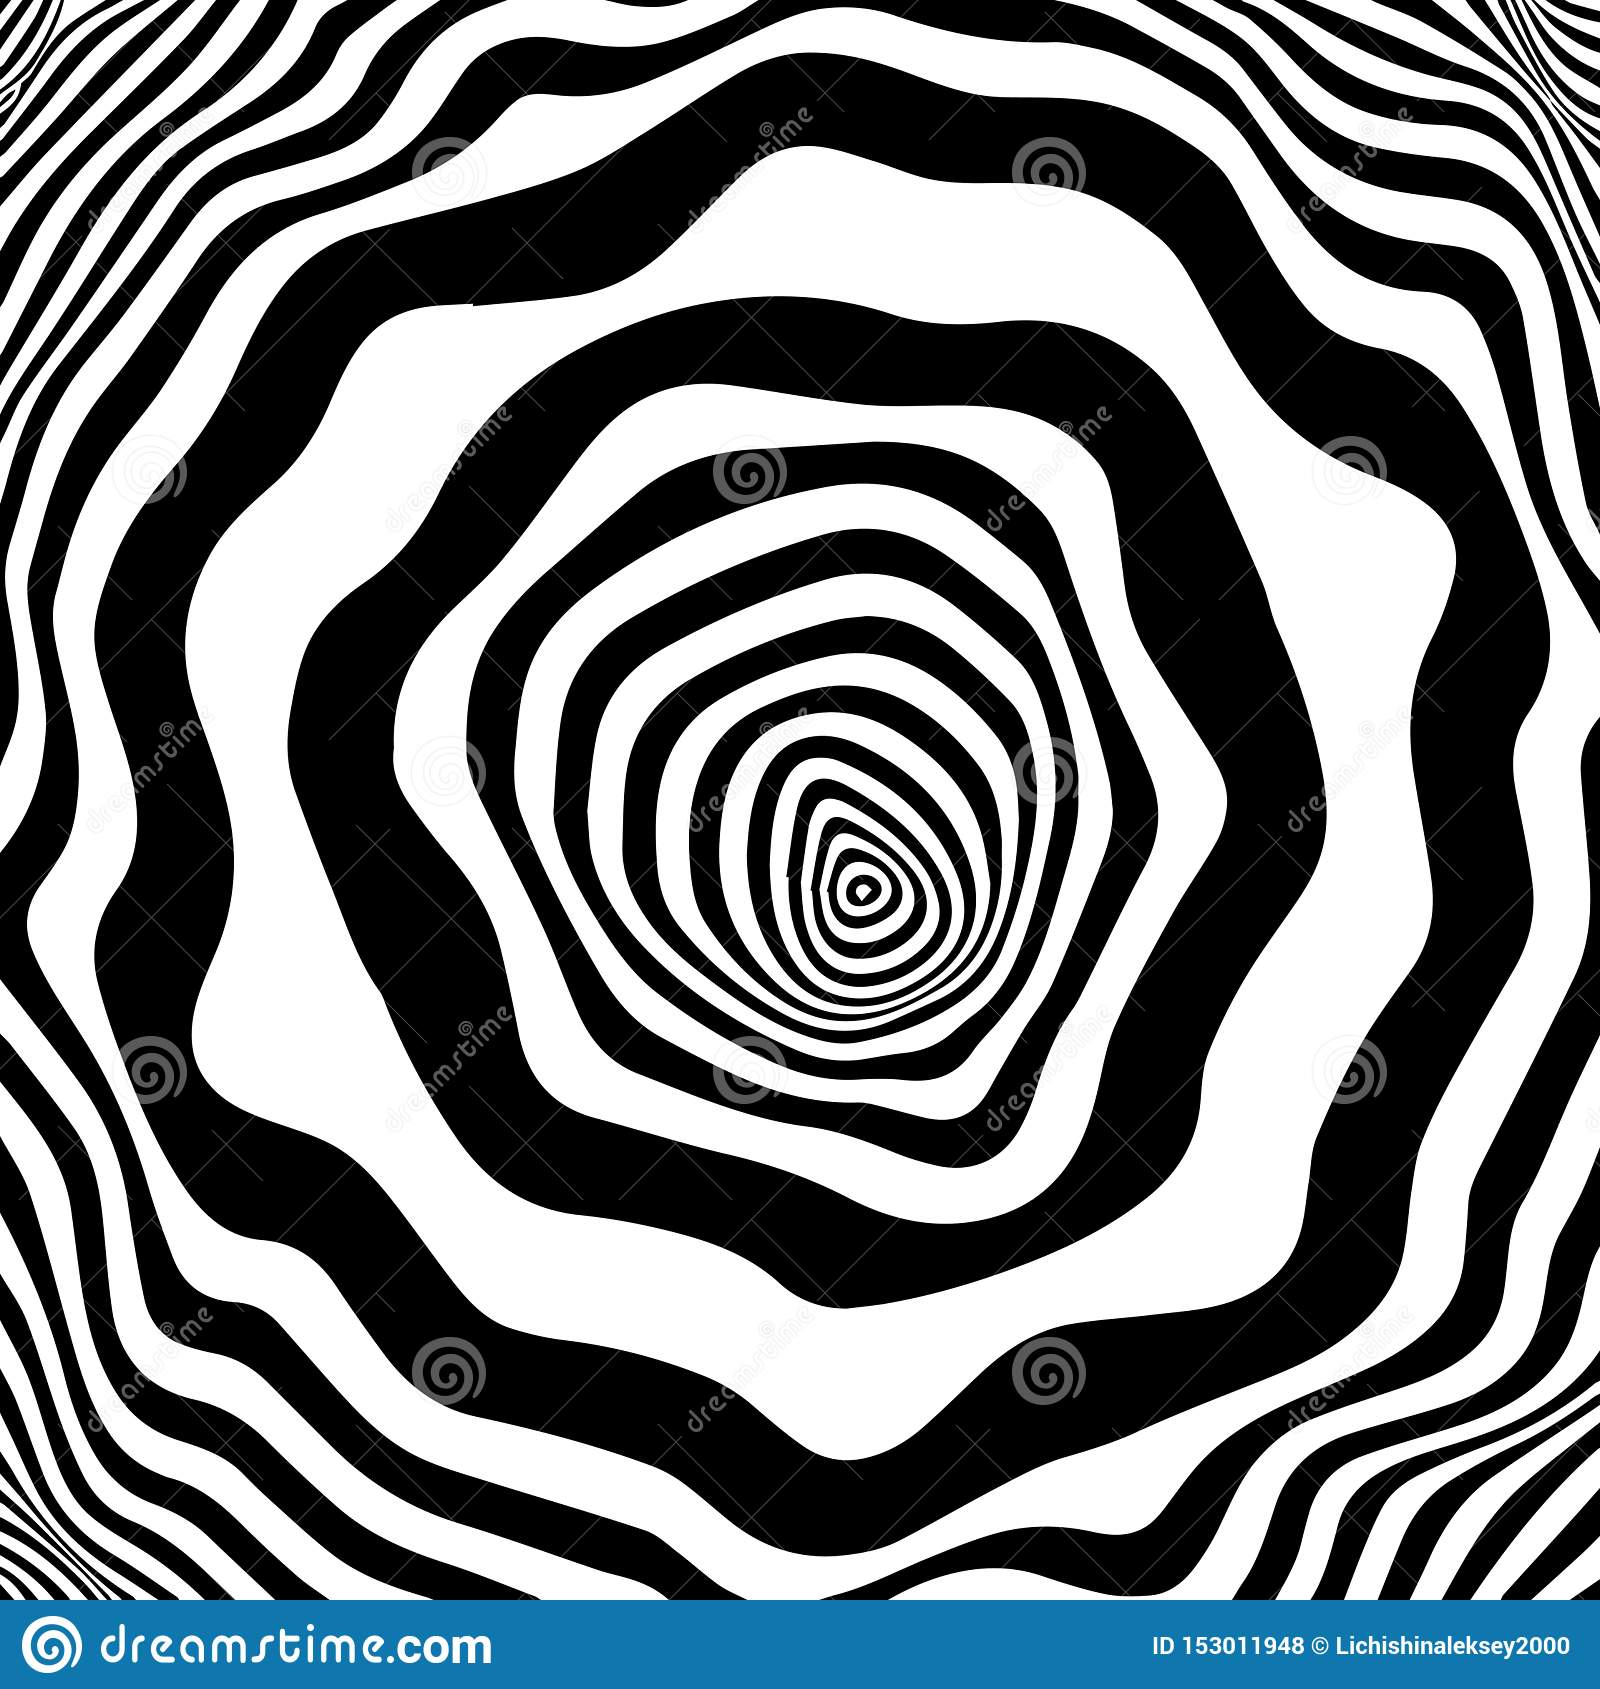 Tunnel or wormhole. Movement lines illusion. Abstract wave whith black and white curve lines. Vector optical illusion